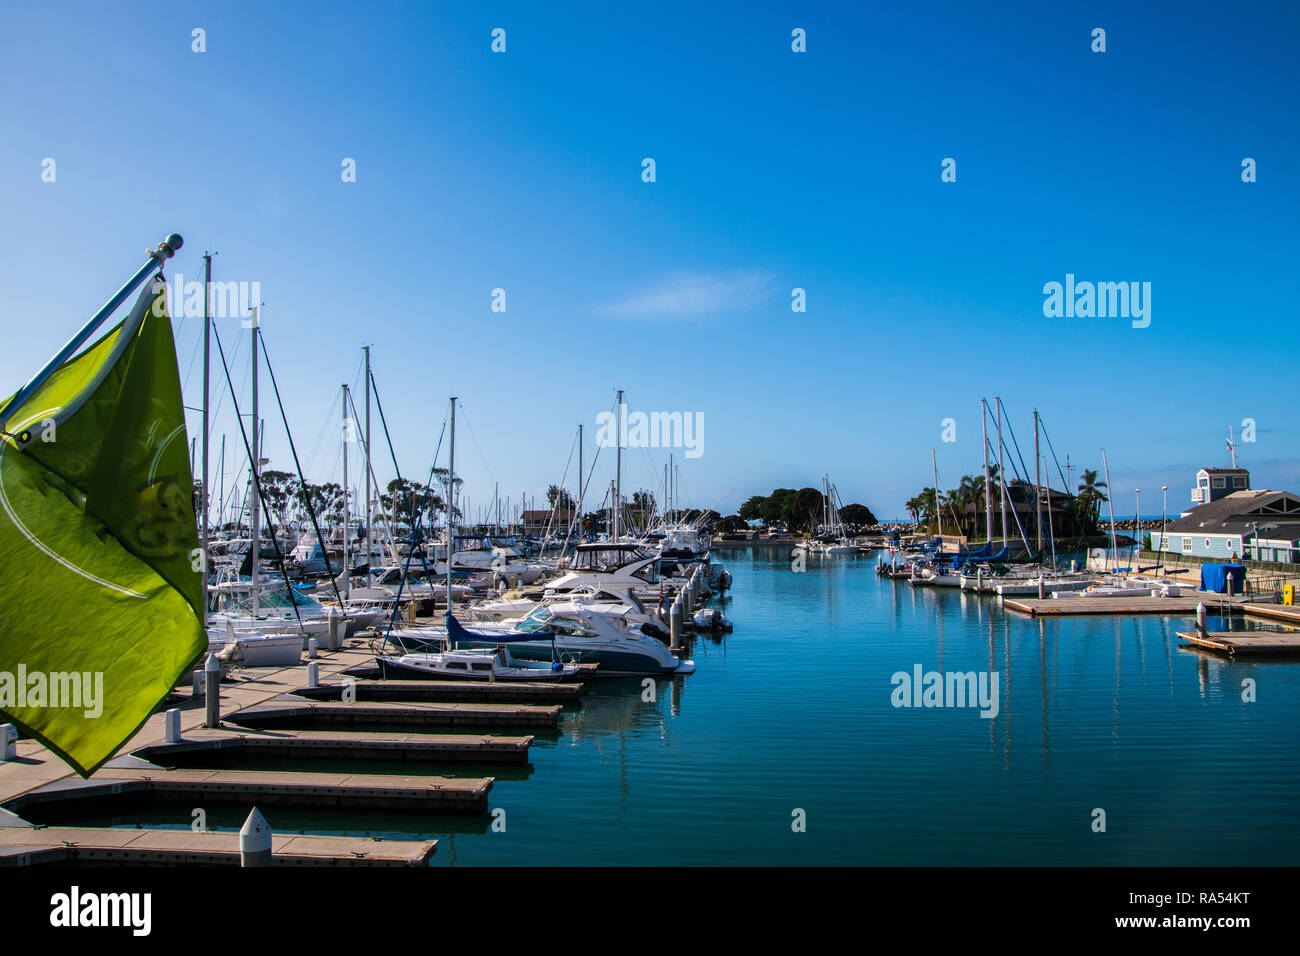 Small marina with beep blue water and many sail and power boats docked in slips - Stock Image